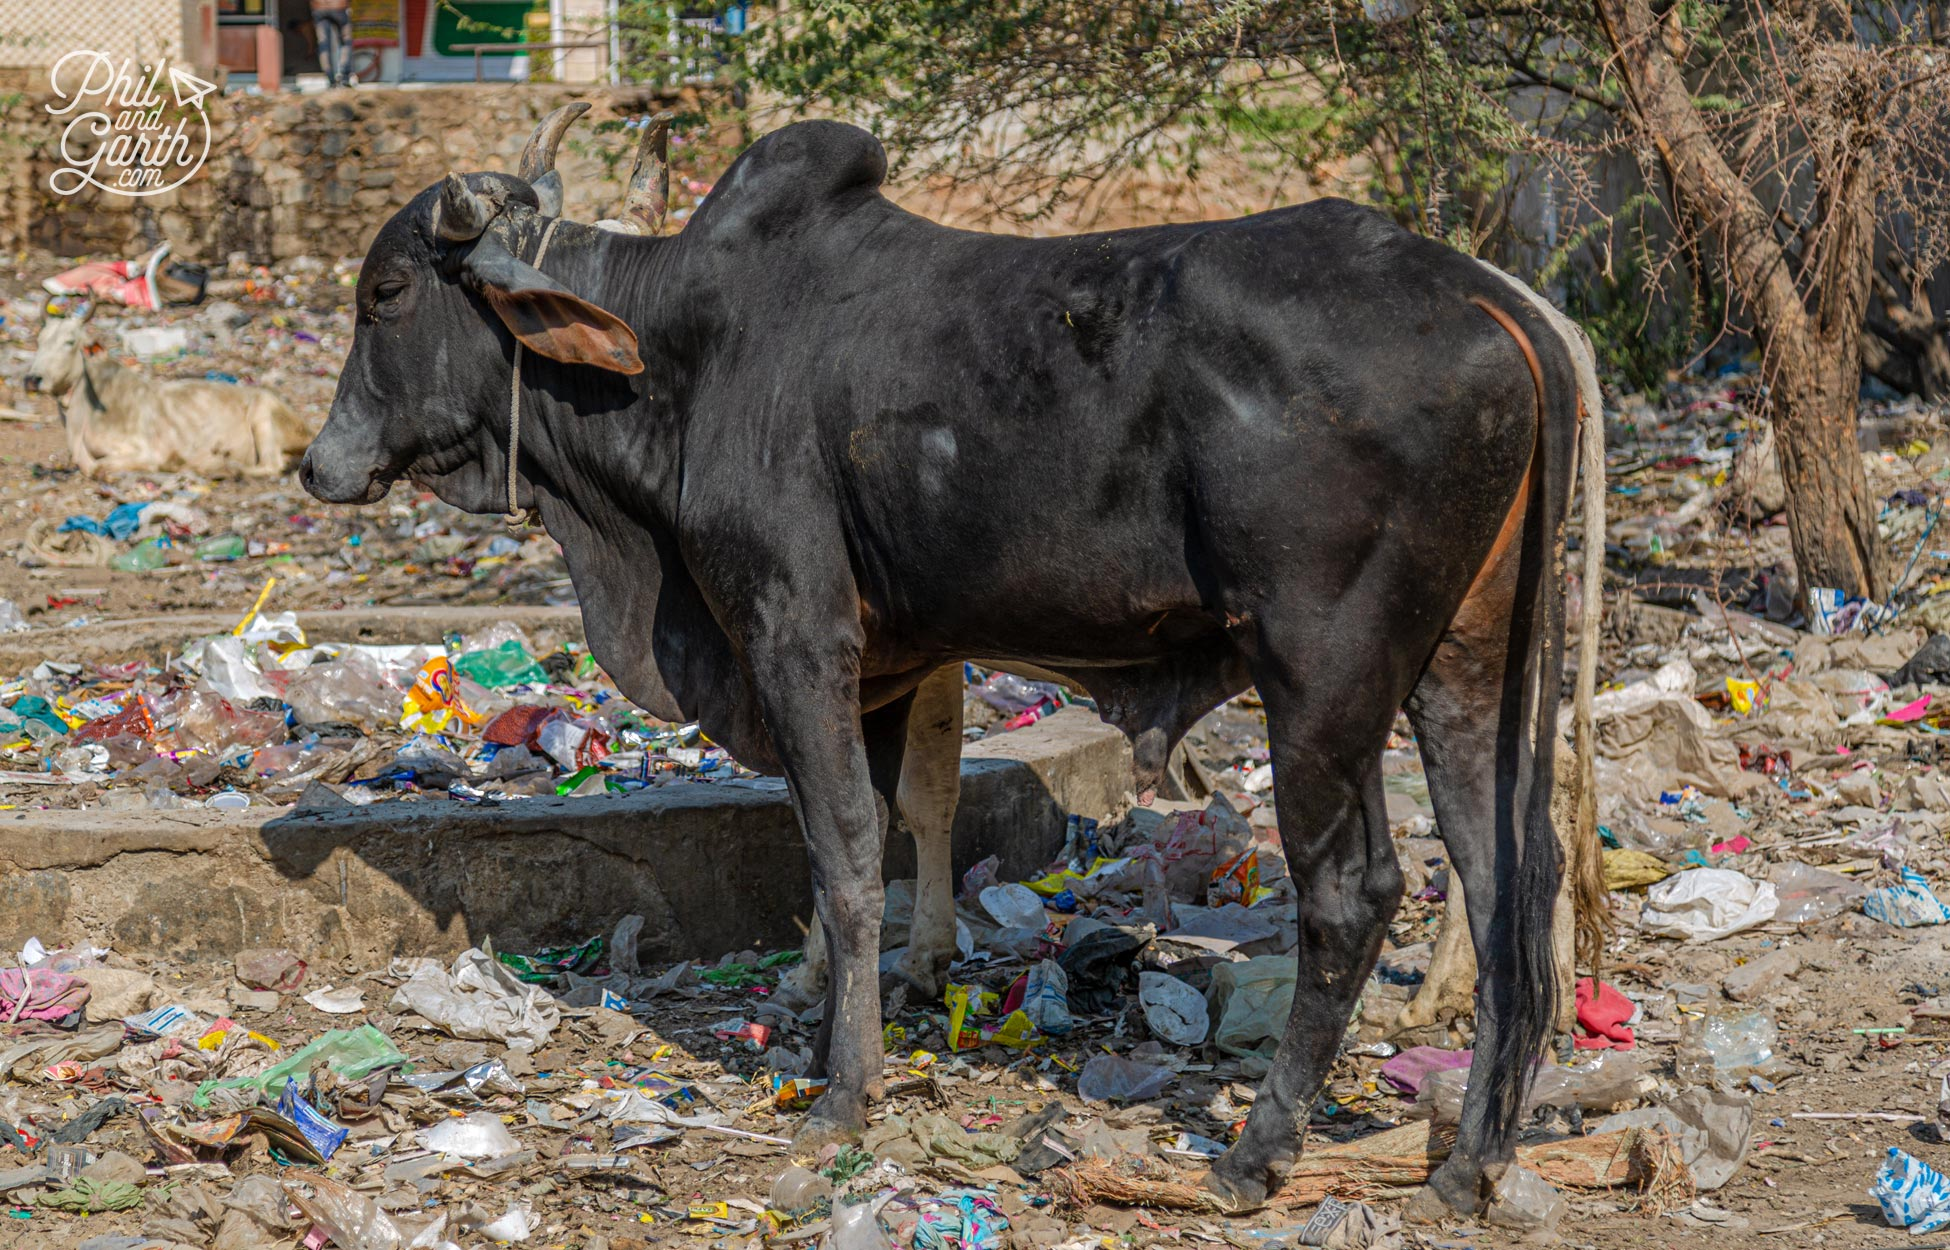 Cows eating what food they can find in the rubble and rubbish